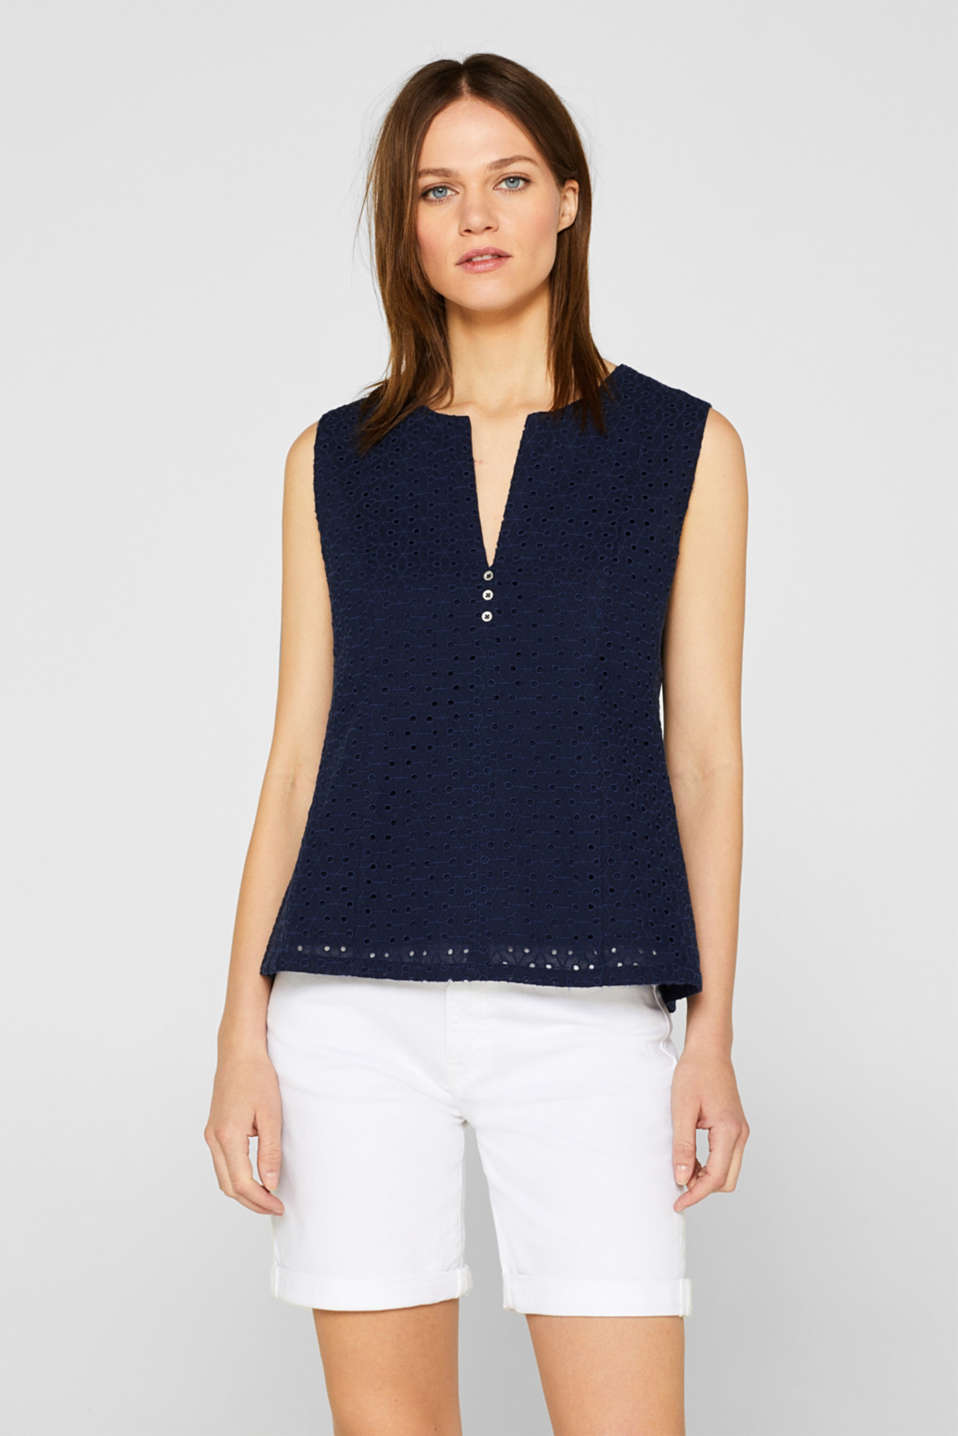 Esprit - Fitted blouse top with broderie anglaise